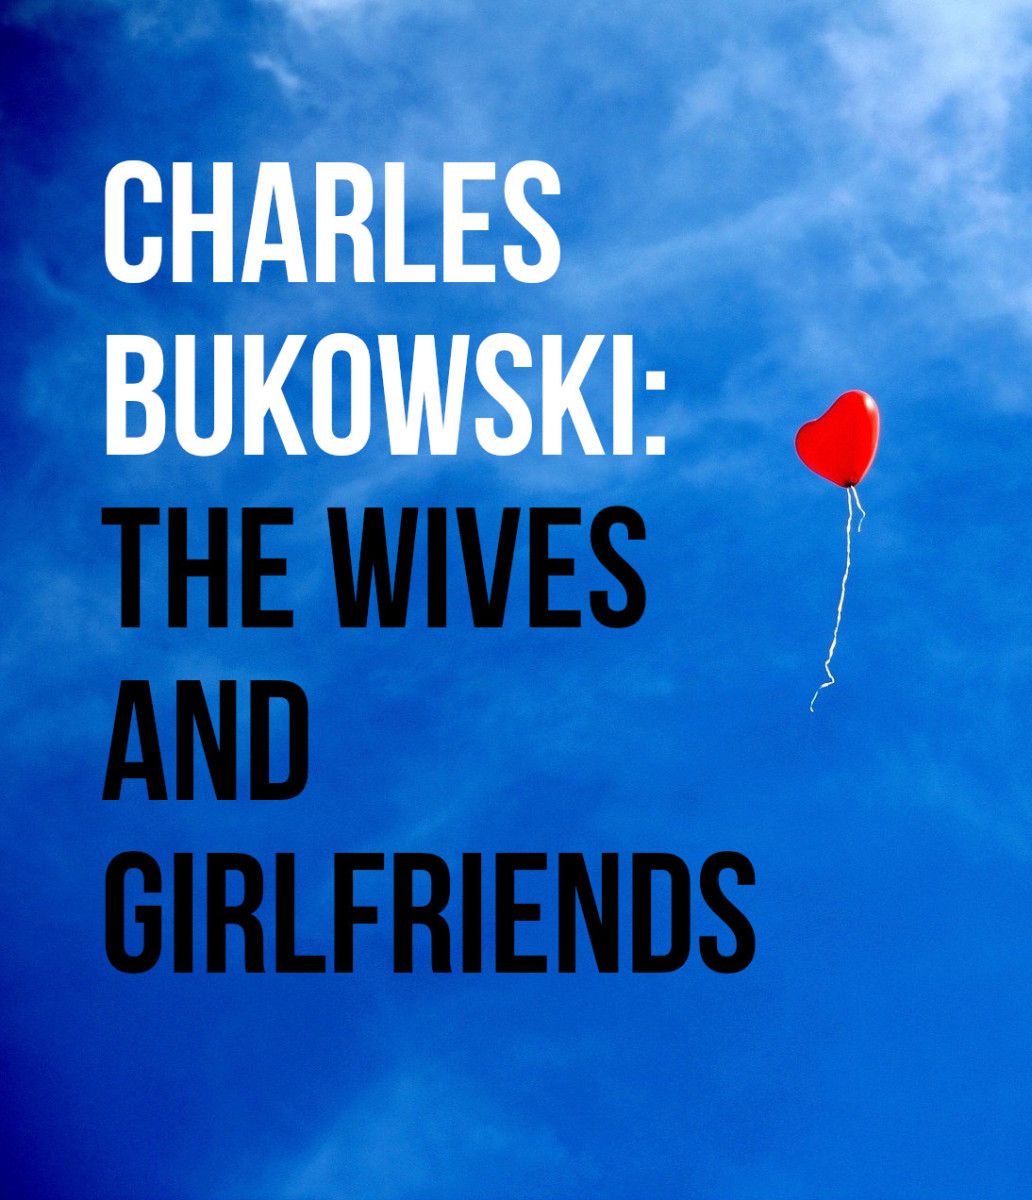 The Wives and Girlfriends of Charles Bukowski